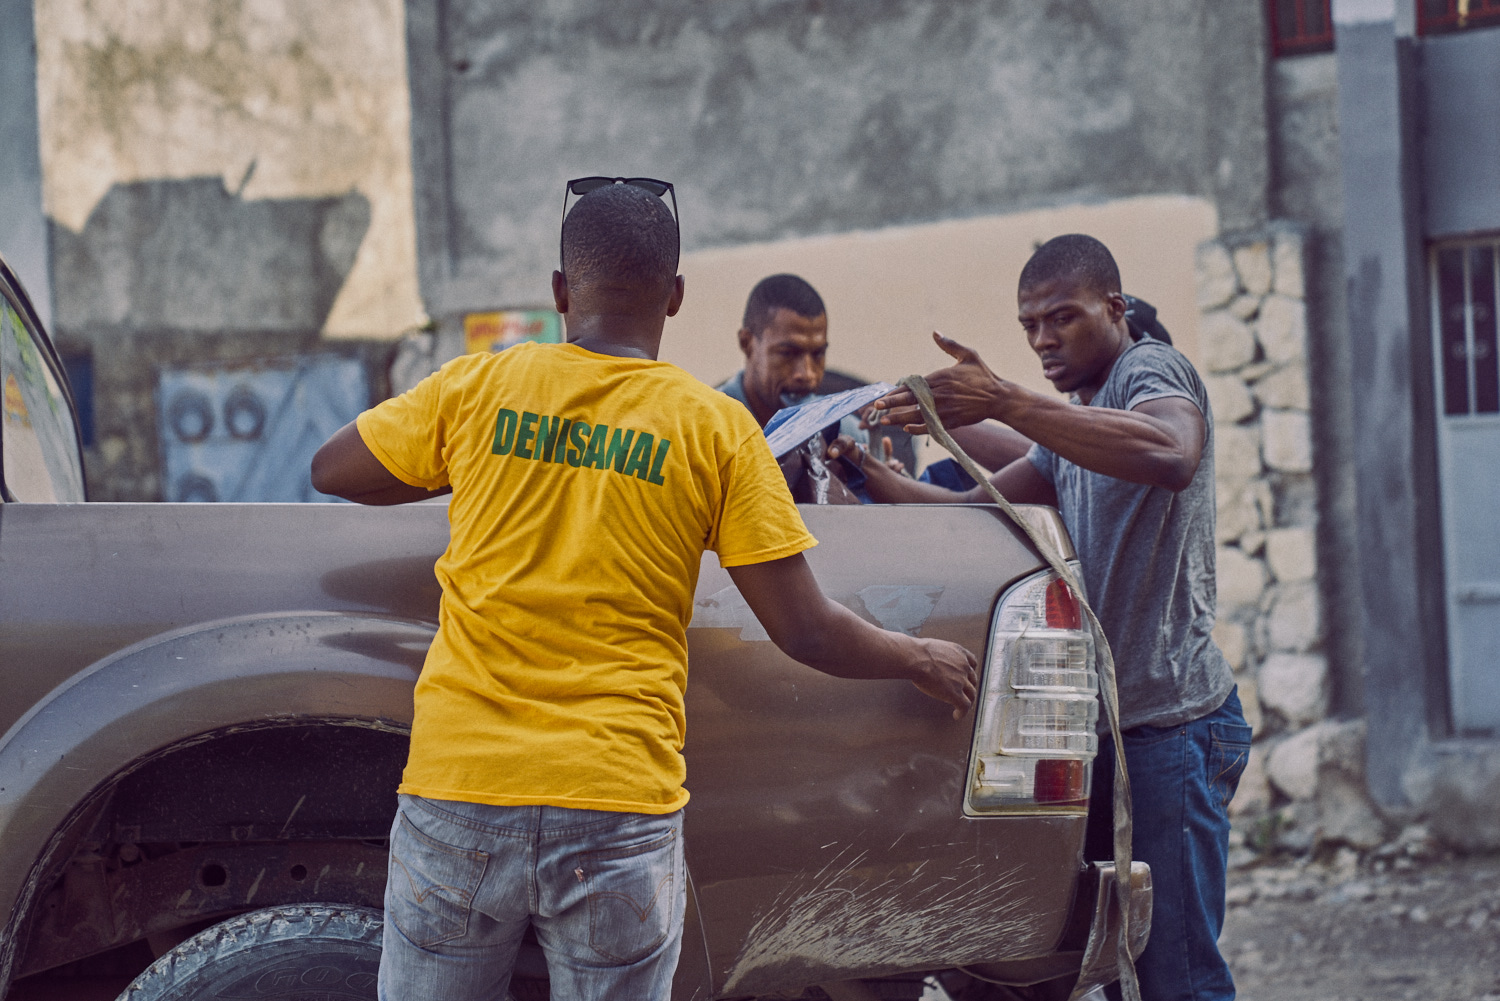 Rolin (pictured left) and Joachim (pictured right) work with the other men to prepare the care packages, medical equipment and other cargo for travel.